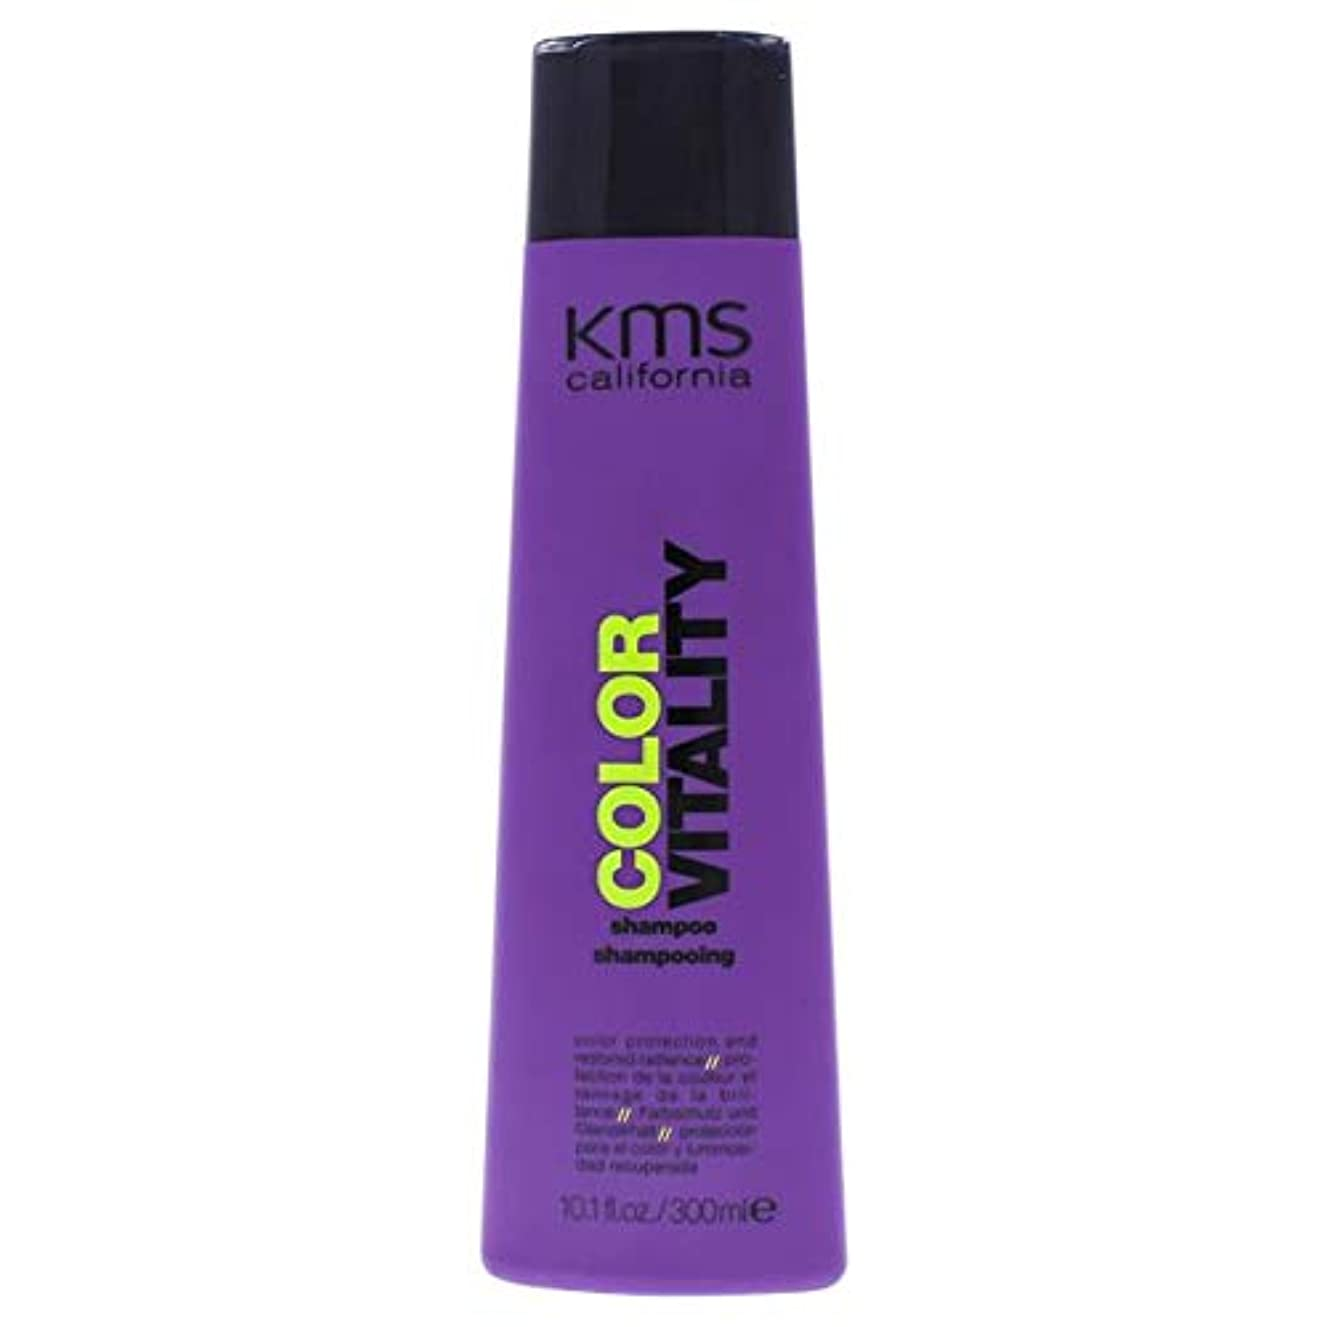 KMS CALIFORNIA by KMS California COLOR VITALITY SHAMPOO 10.1 OZ 100% Authentic